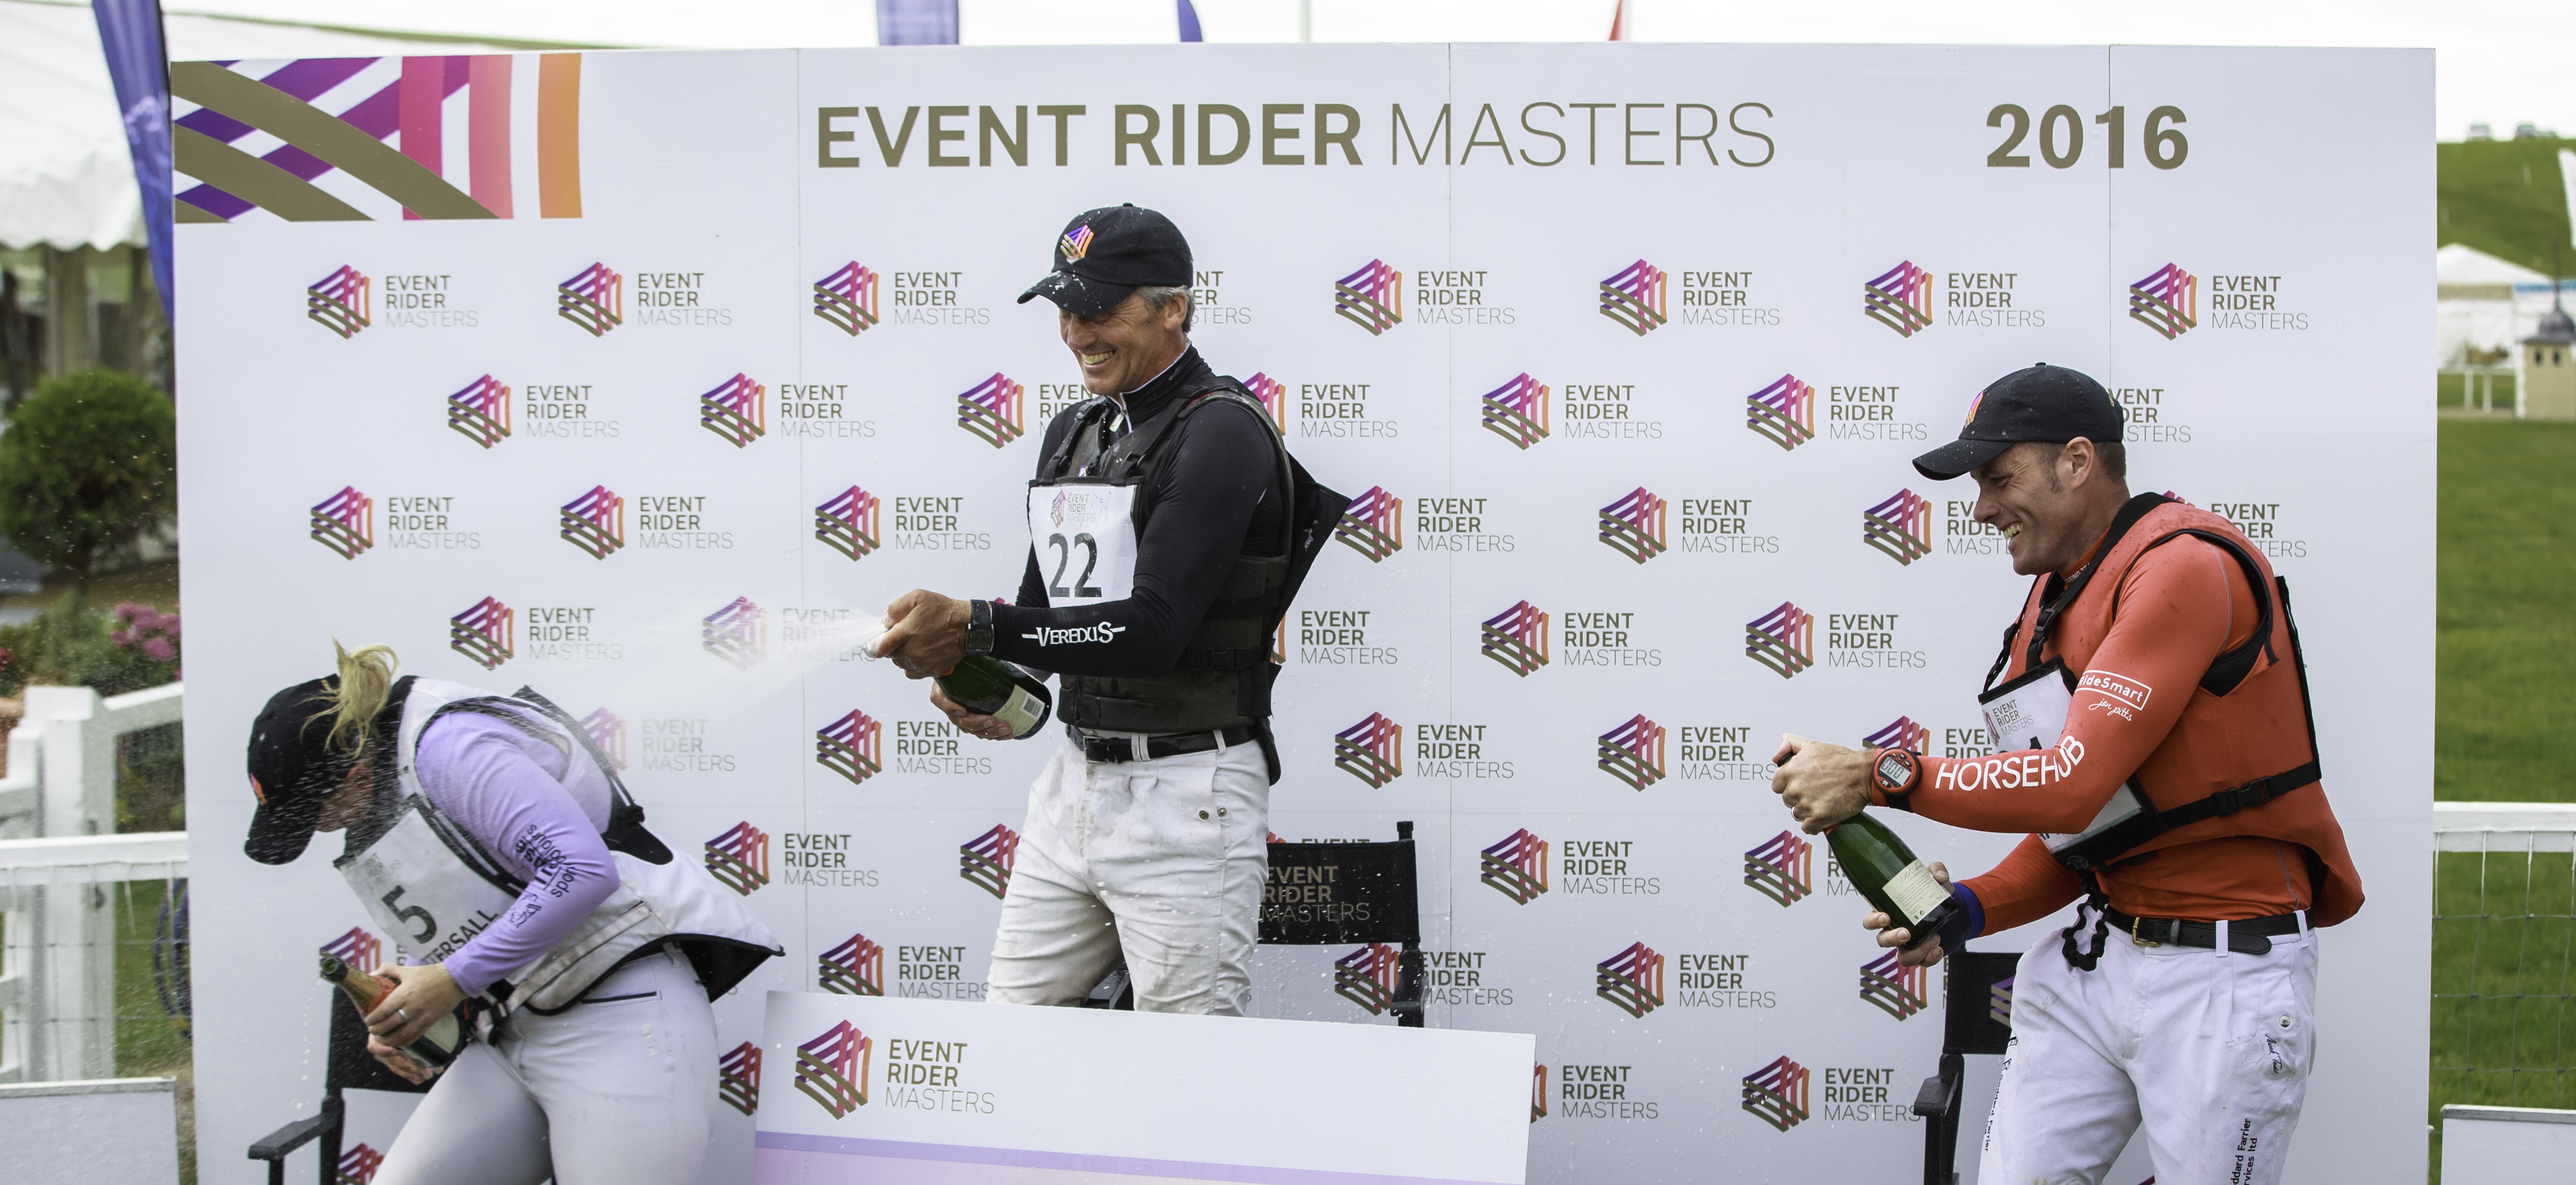 L-R Top three on the ERM podium Gemma Tattersall, Andrew Nicholson and Paul Tapner © Libby Law Photography & Eventridermasters.tv